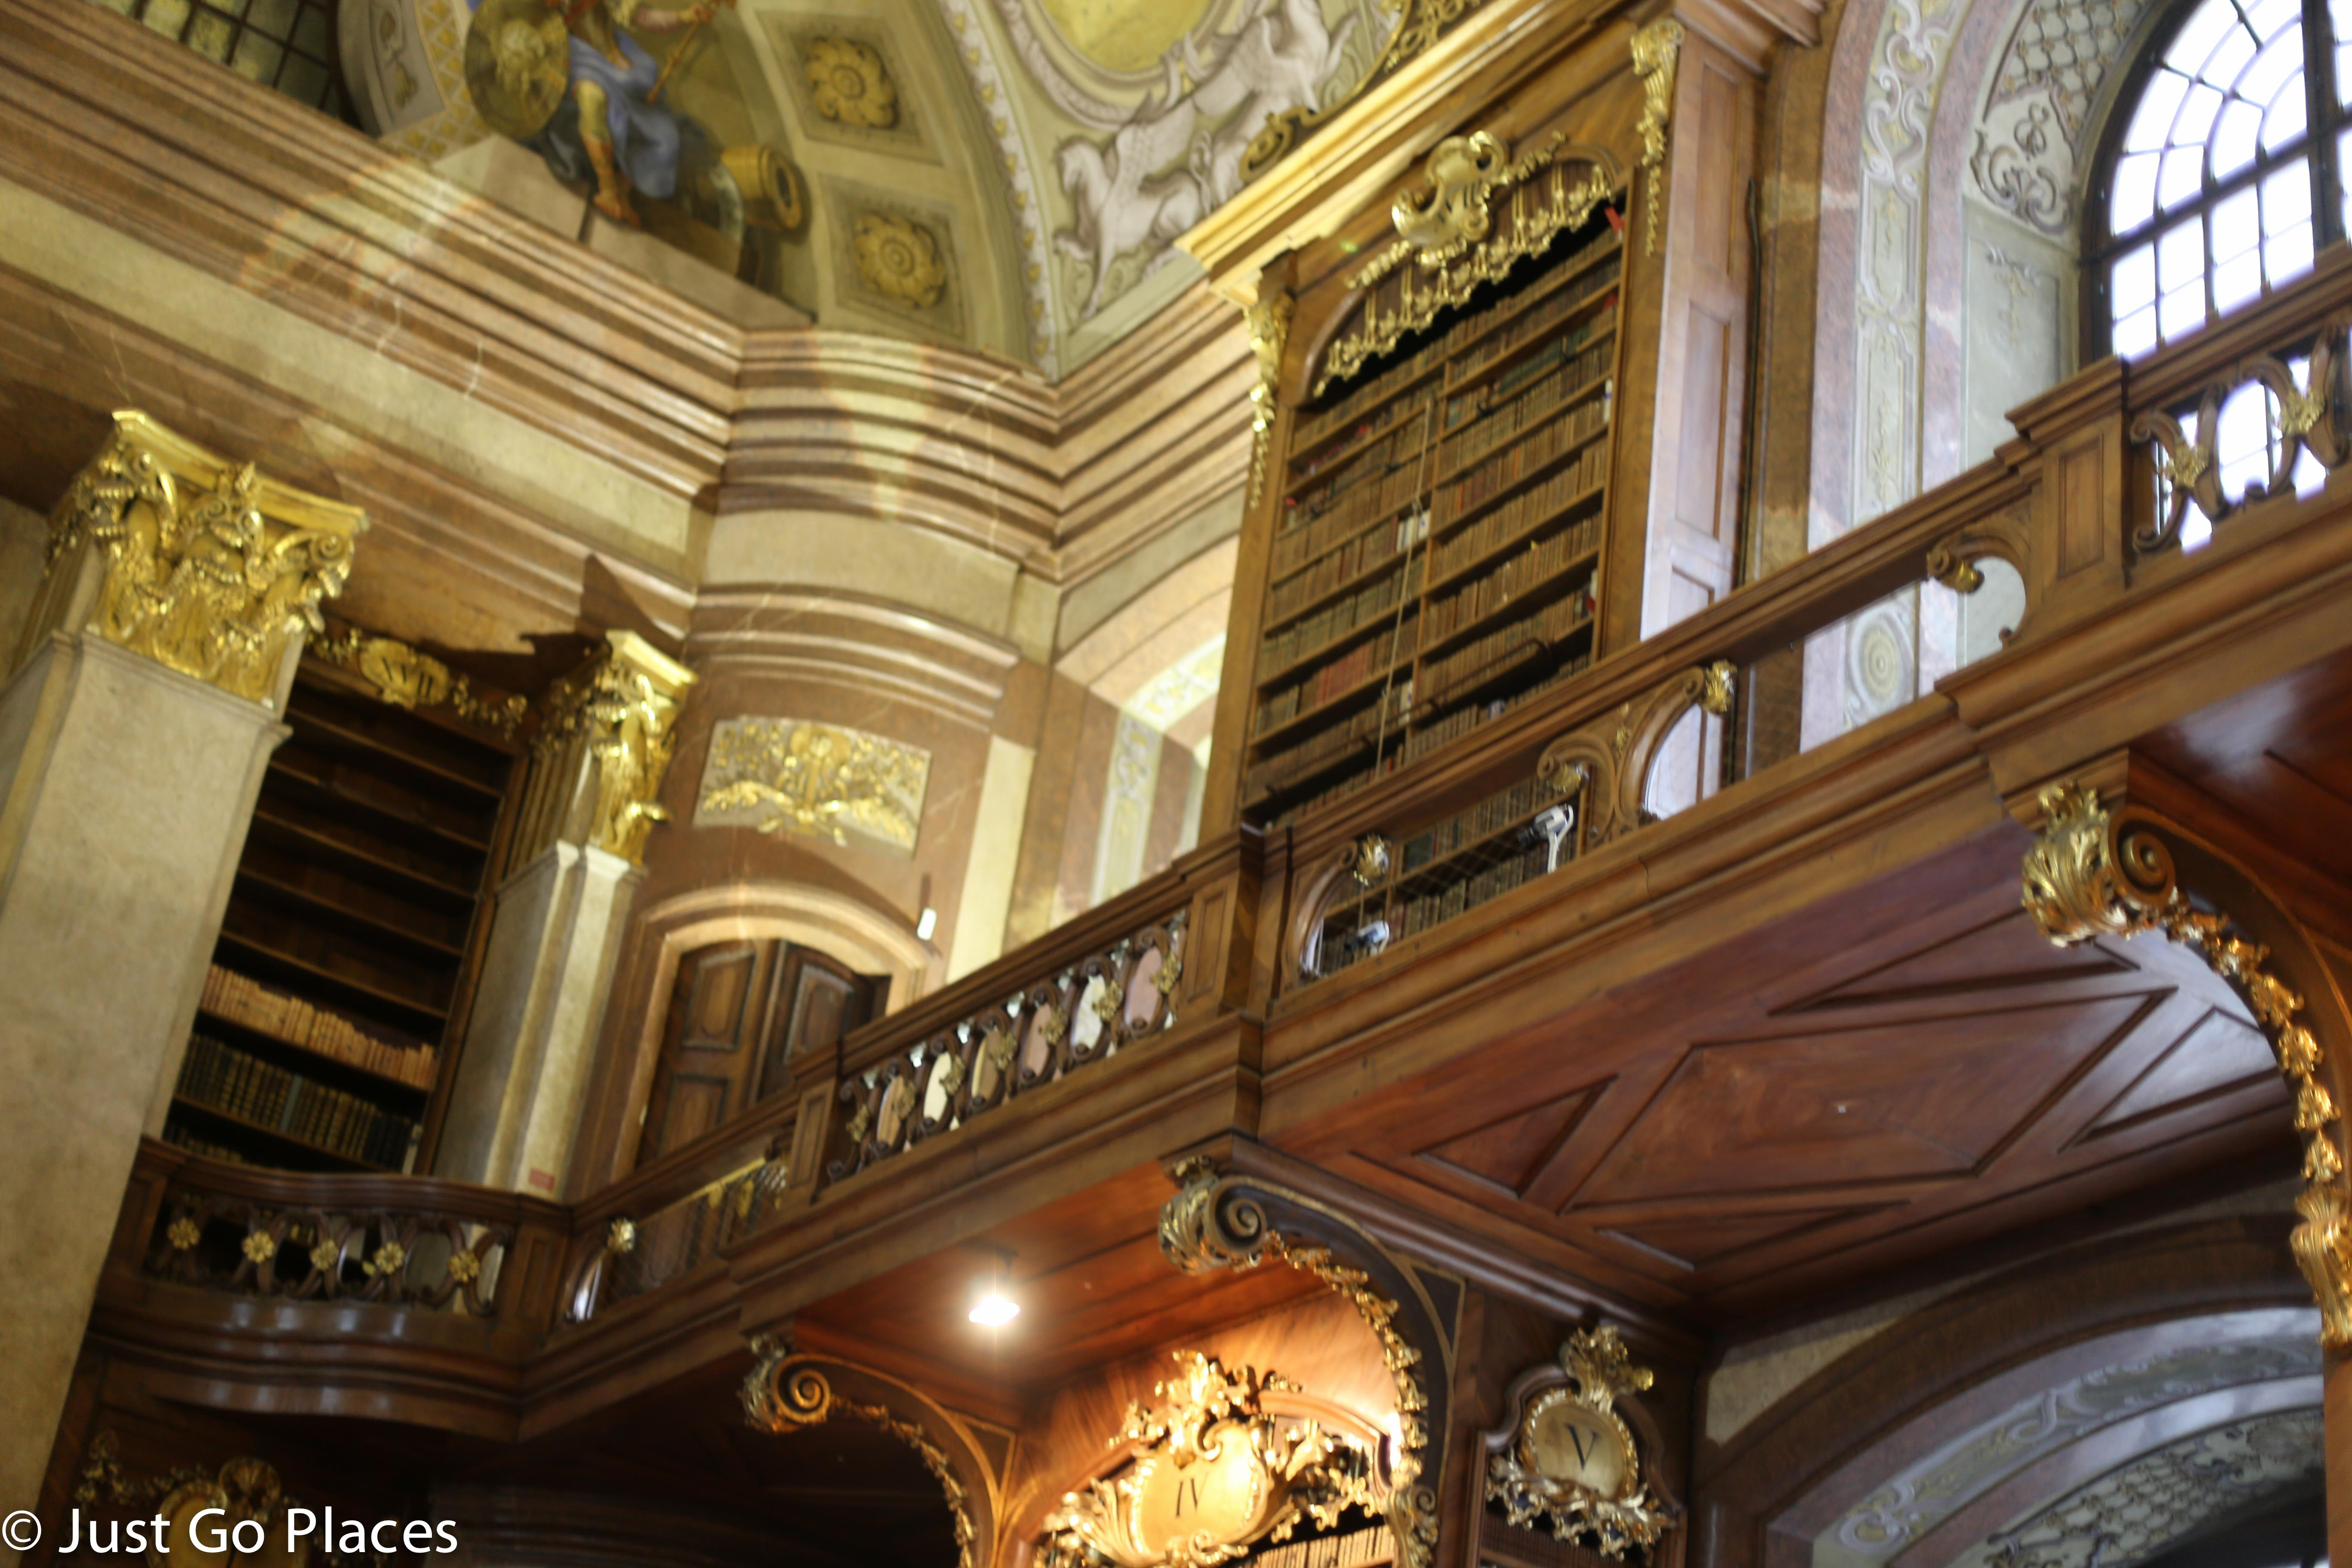 Austrian Imperial Library